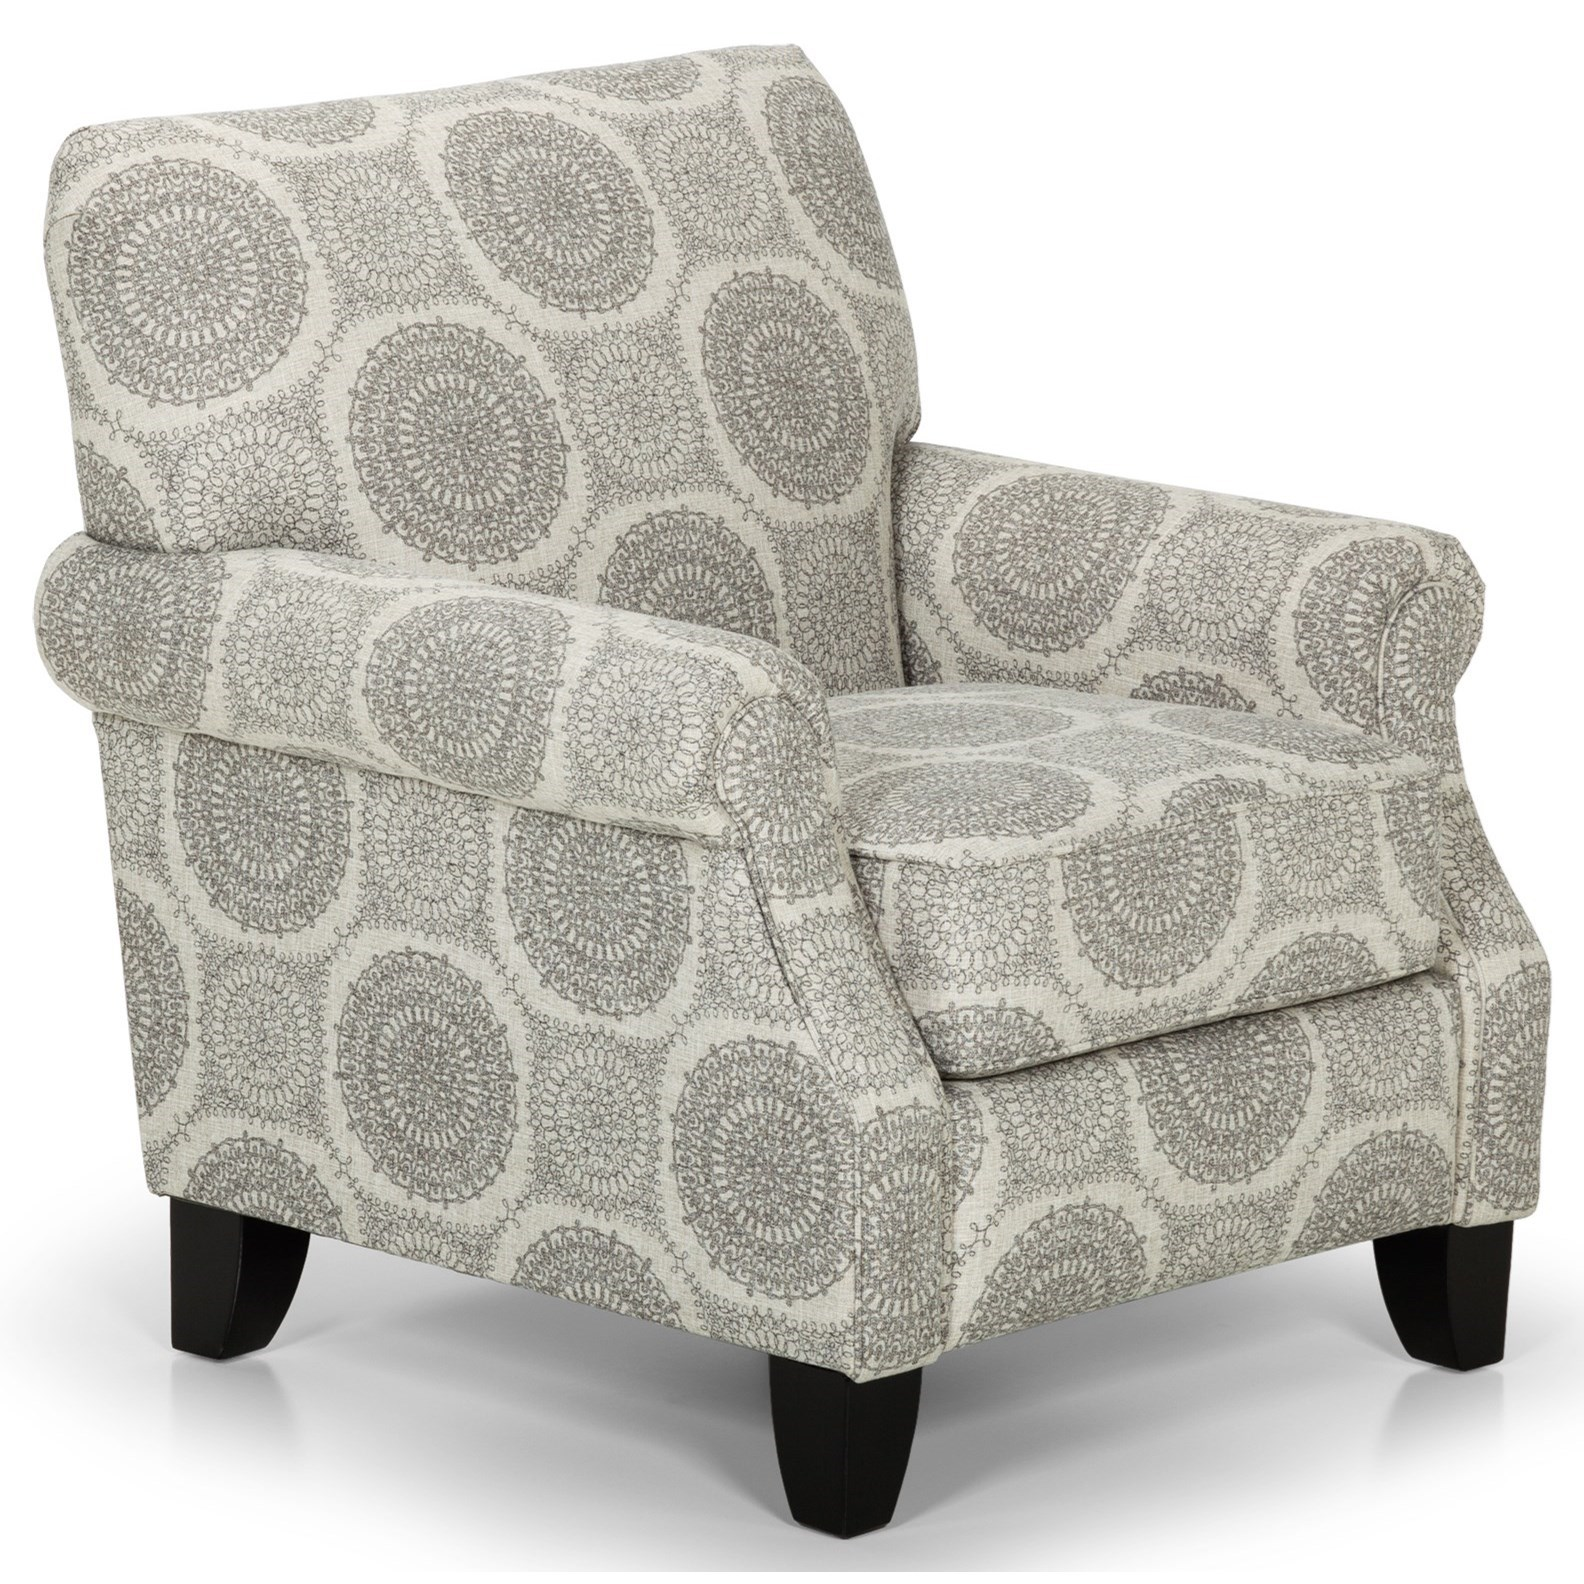 29057 Upholstered Accent Chair by Sunset Home at Sadler's Home Furnishings